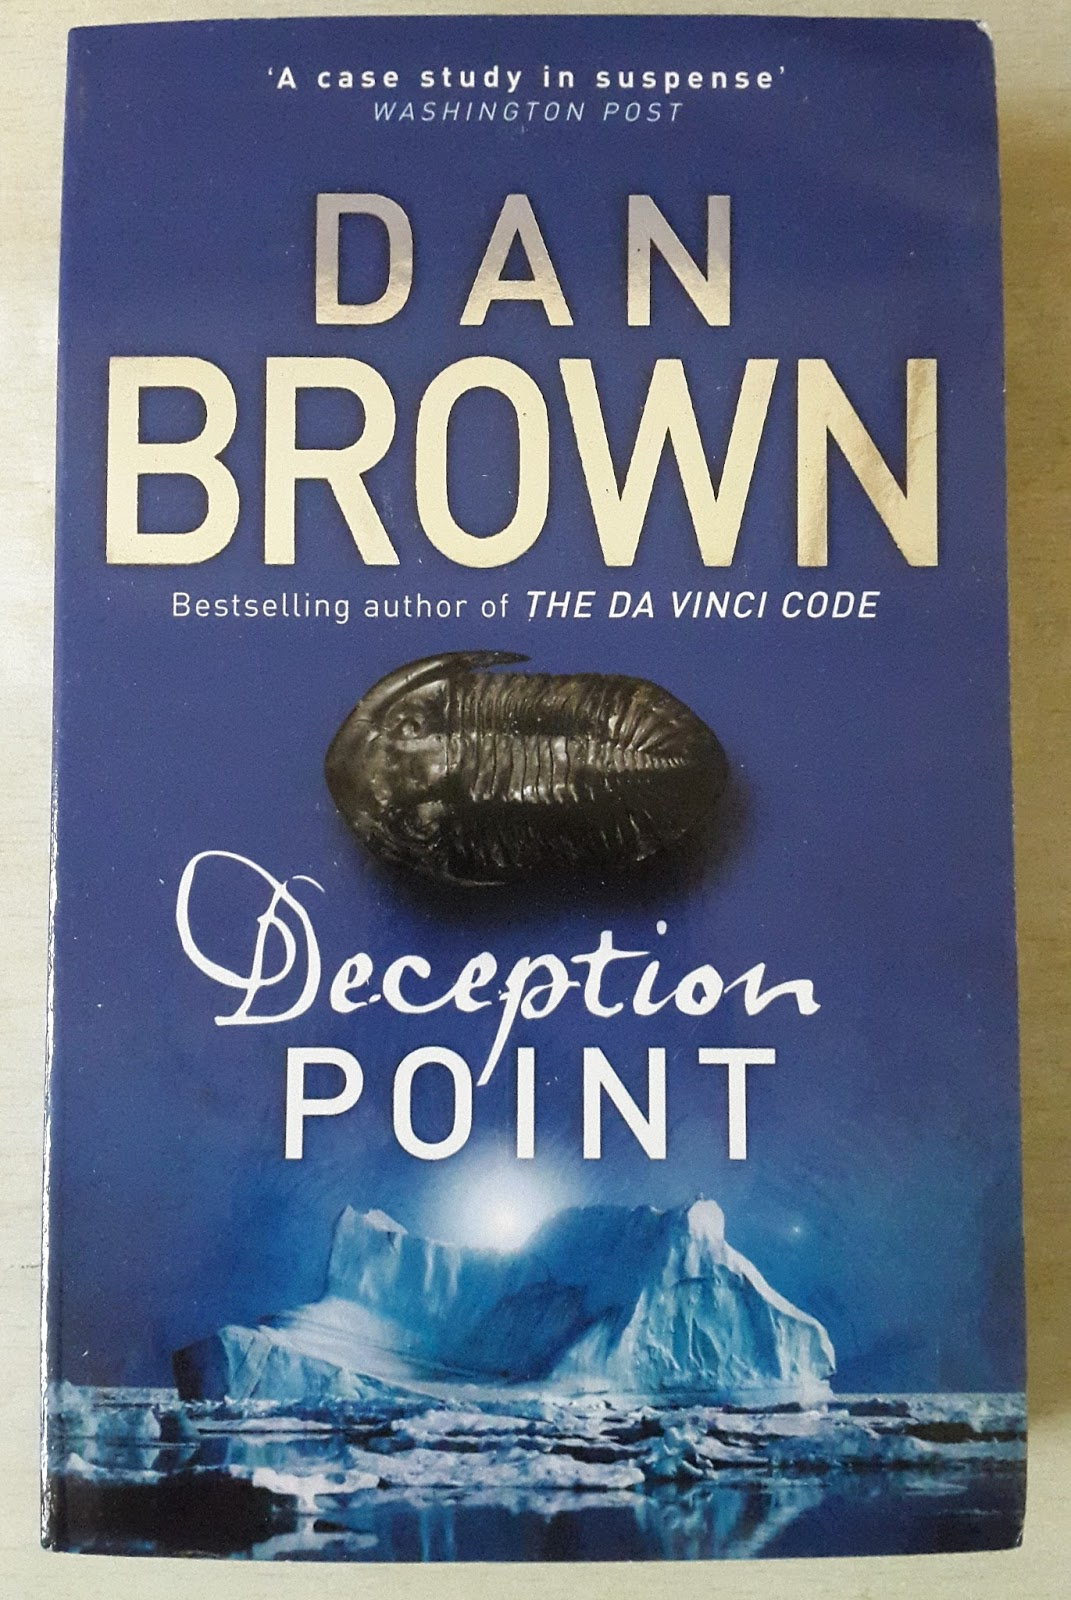 Book Review : Deception Point - THE OTHER SIDE